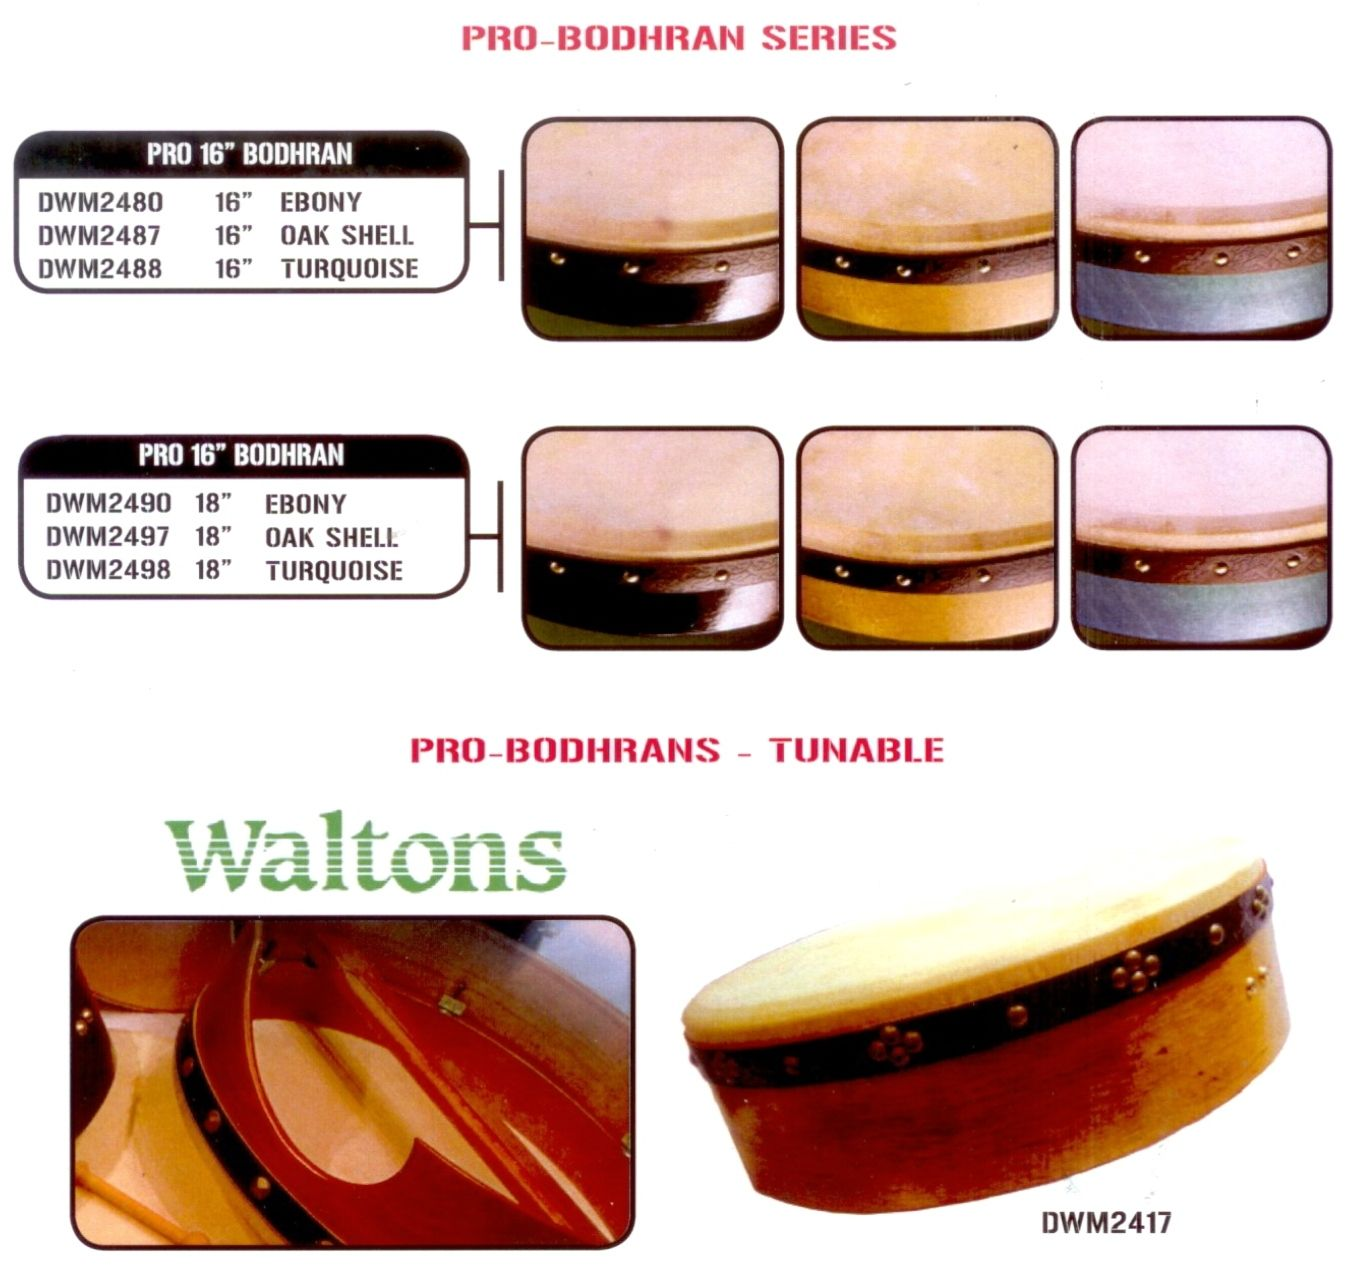 Waltons also make a premium range of Bodhran for professional players